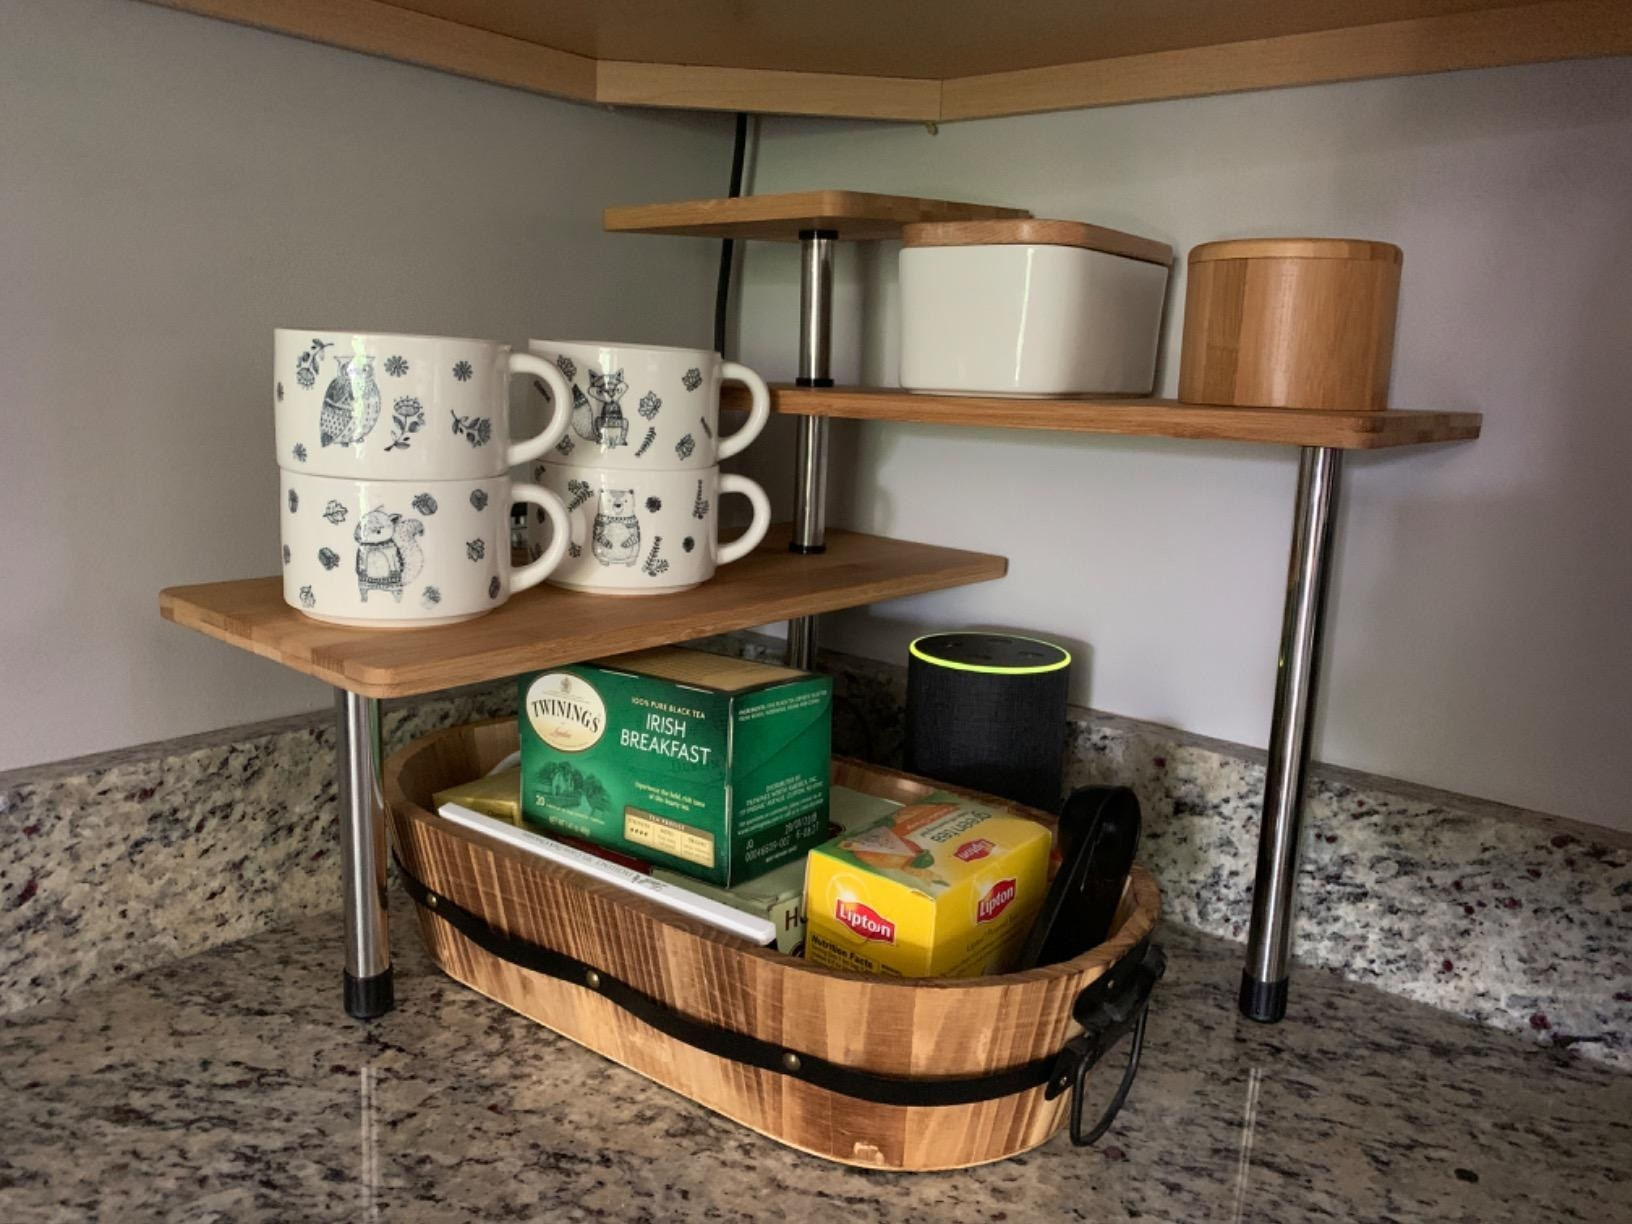 Reviewer pic of the three-tier shelves with wood tops and silver legs in the corner of a counter with mugs and assorted other products on it and below it